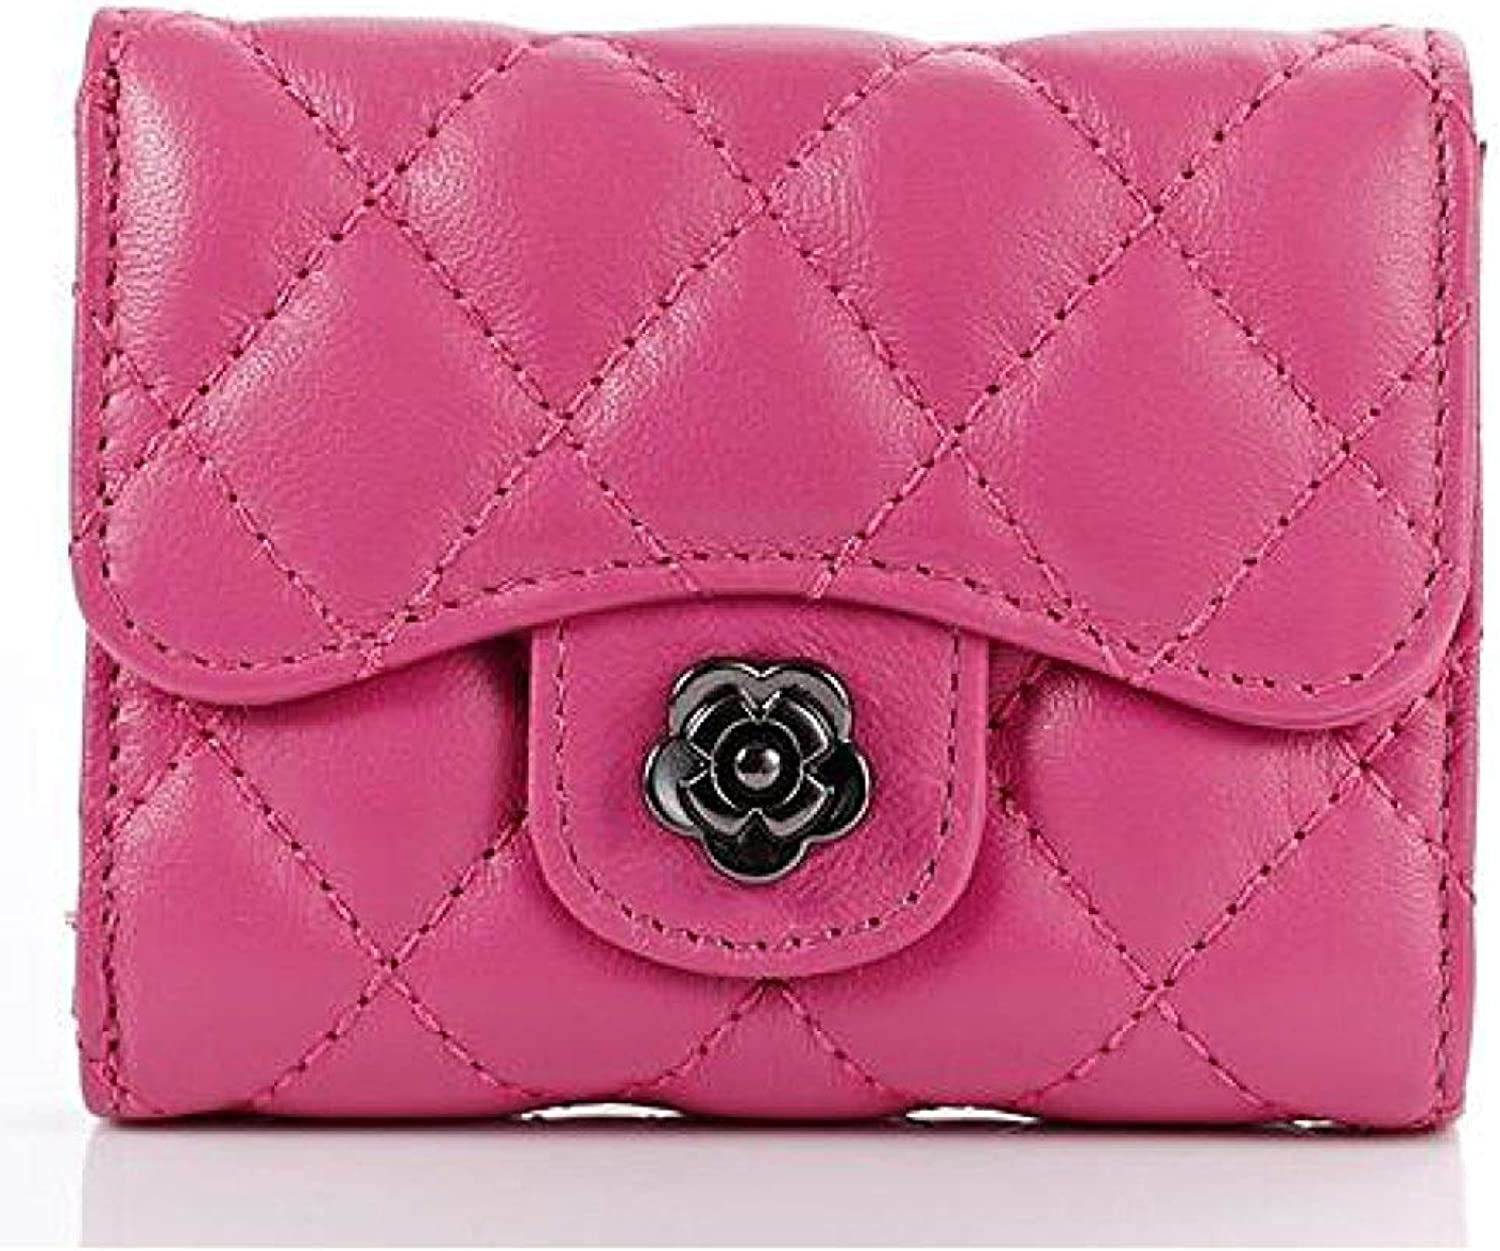 Evening Clutch Bag Female Short Paragraph Small Purse Europe And The United States Lingge Trifold Ladies Wallet Purse Handbag (color   pinkred, Size   One Size)